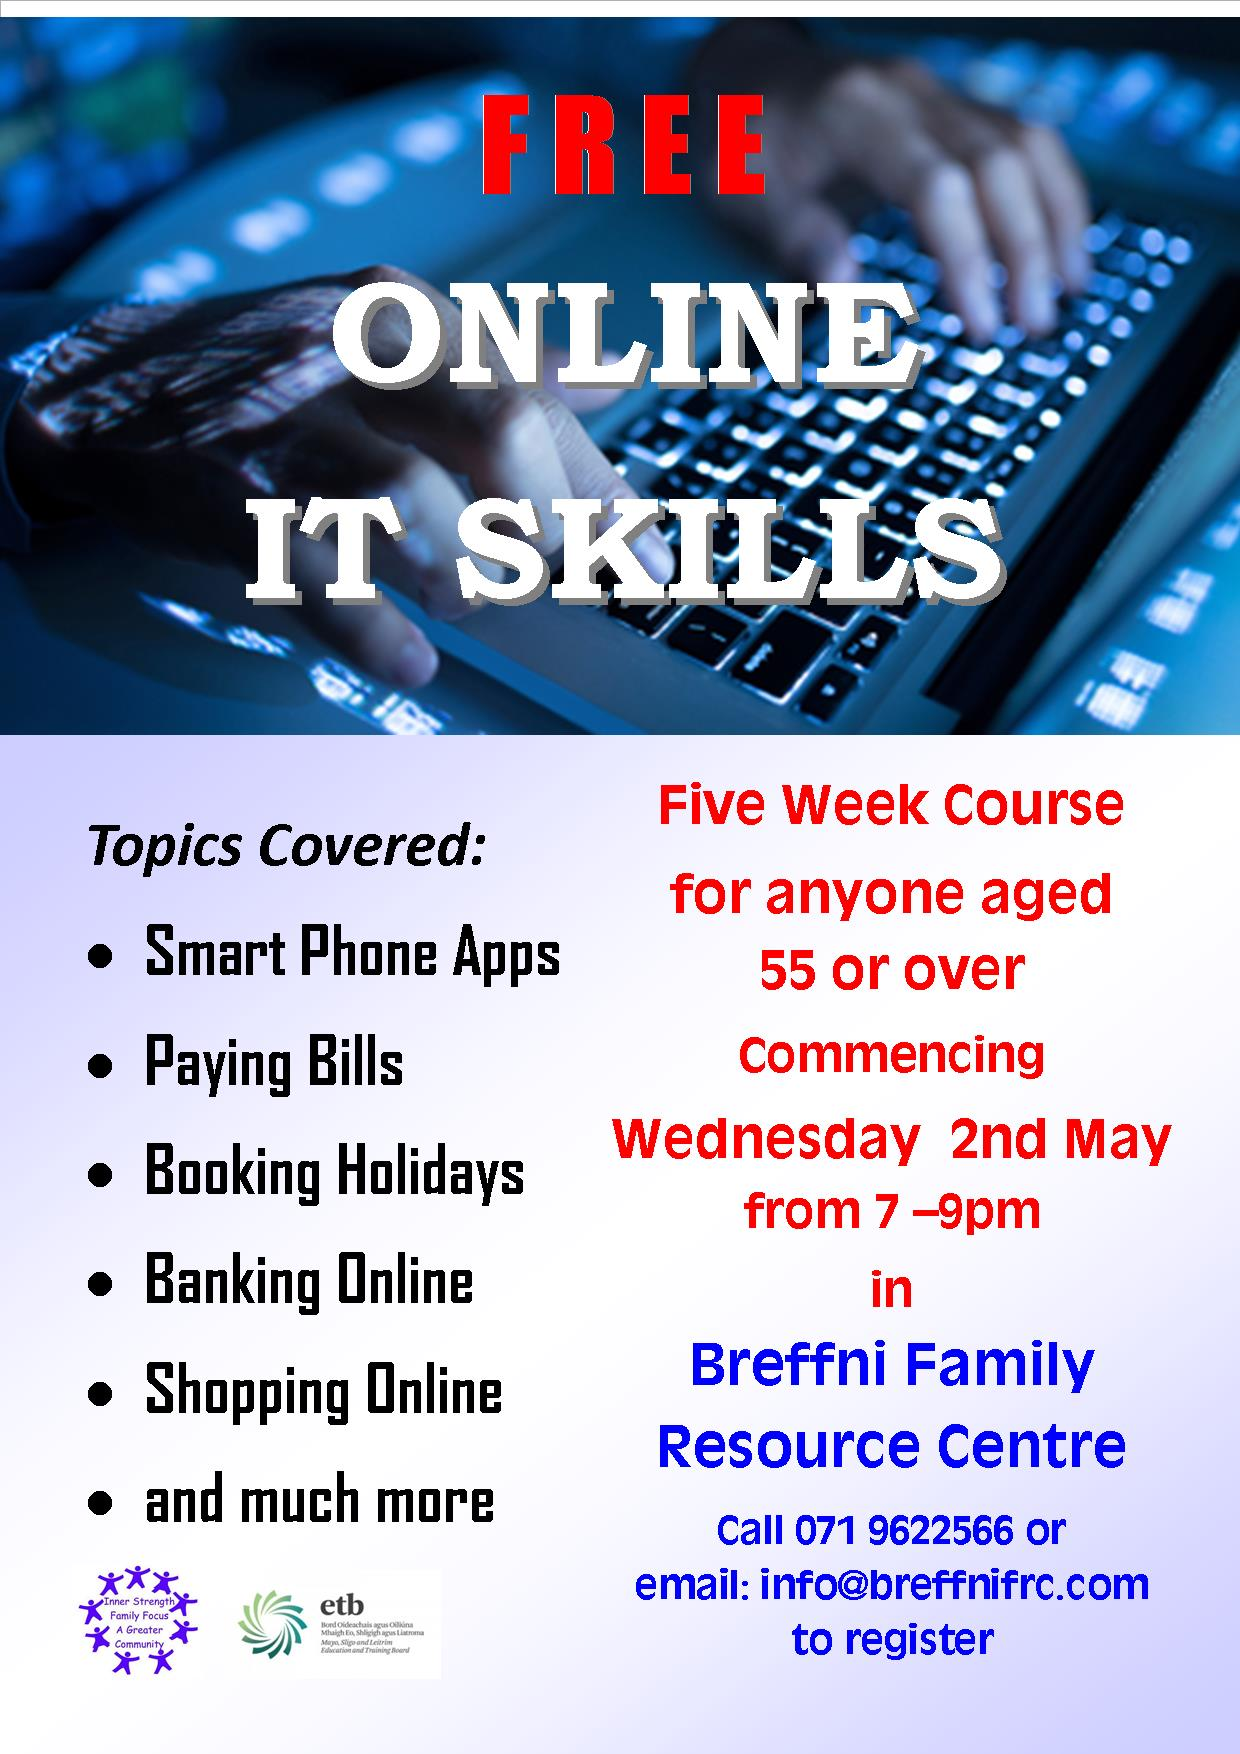 MyCarrick Event - Breffni Family Resource Centre - Online IT Skills